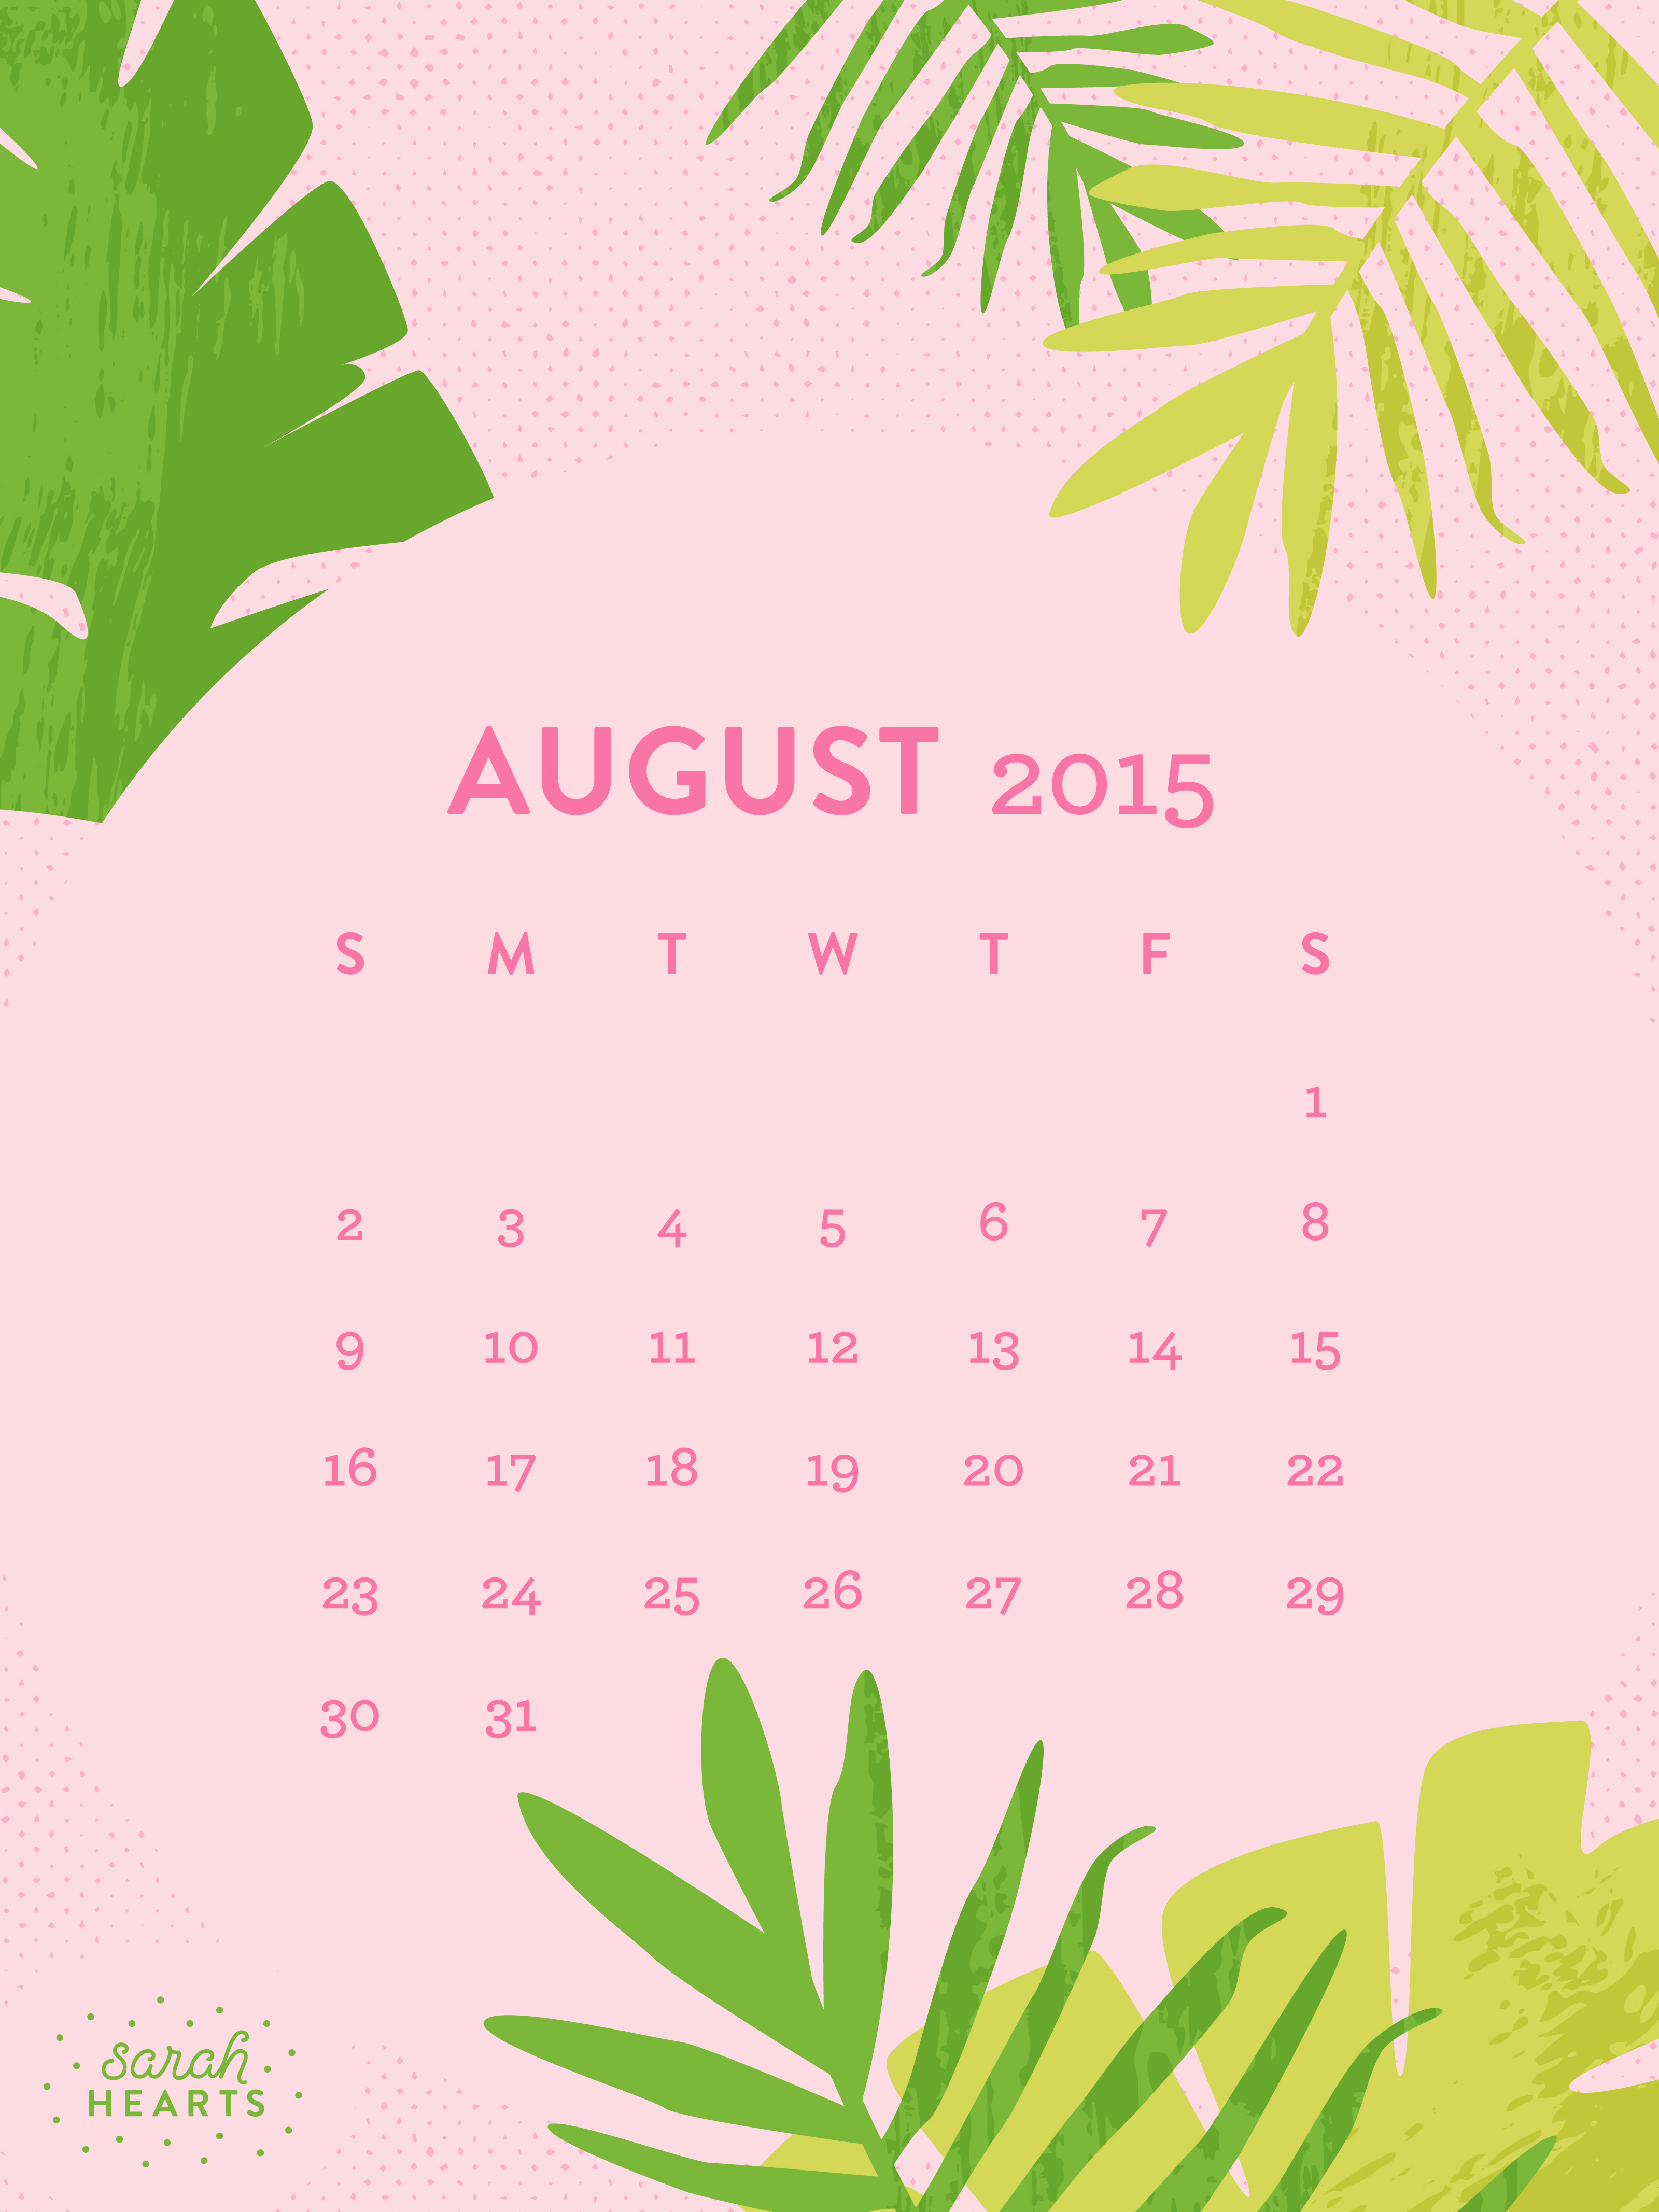 Calendar Wallpaper Ipad : August calendar wallpaper sarah hearts